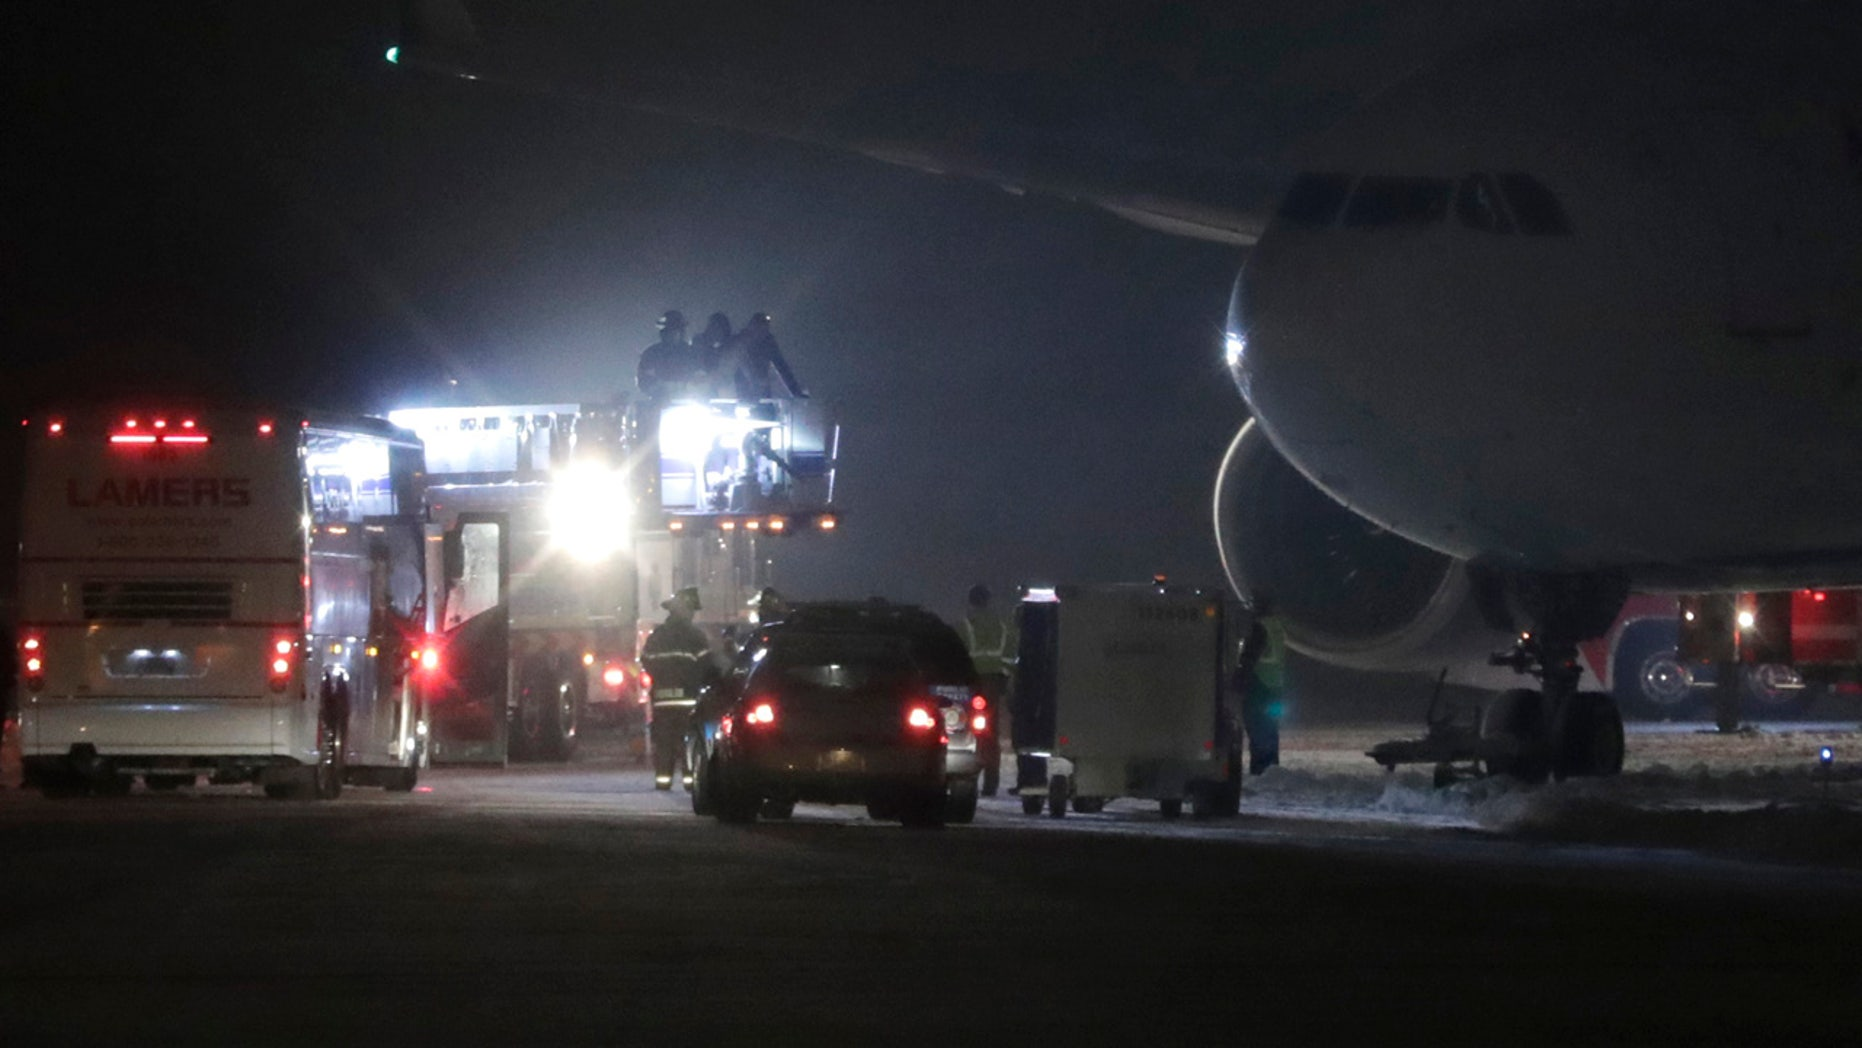 Players, coaches and staff from the Minnesota Vikings are taken off a plane in small groups at Appleton International Airport on Friday, Dec. 23, 2016, in Appleton, Wis.